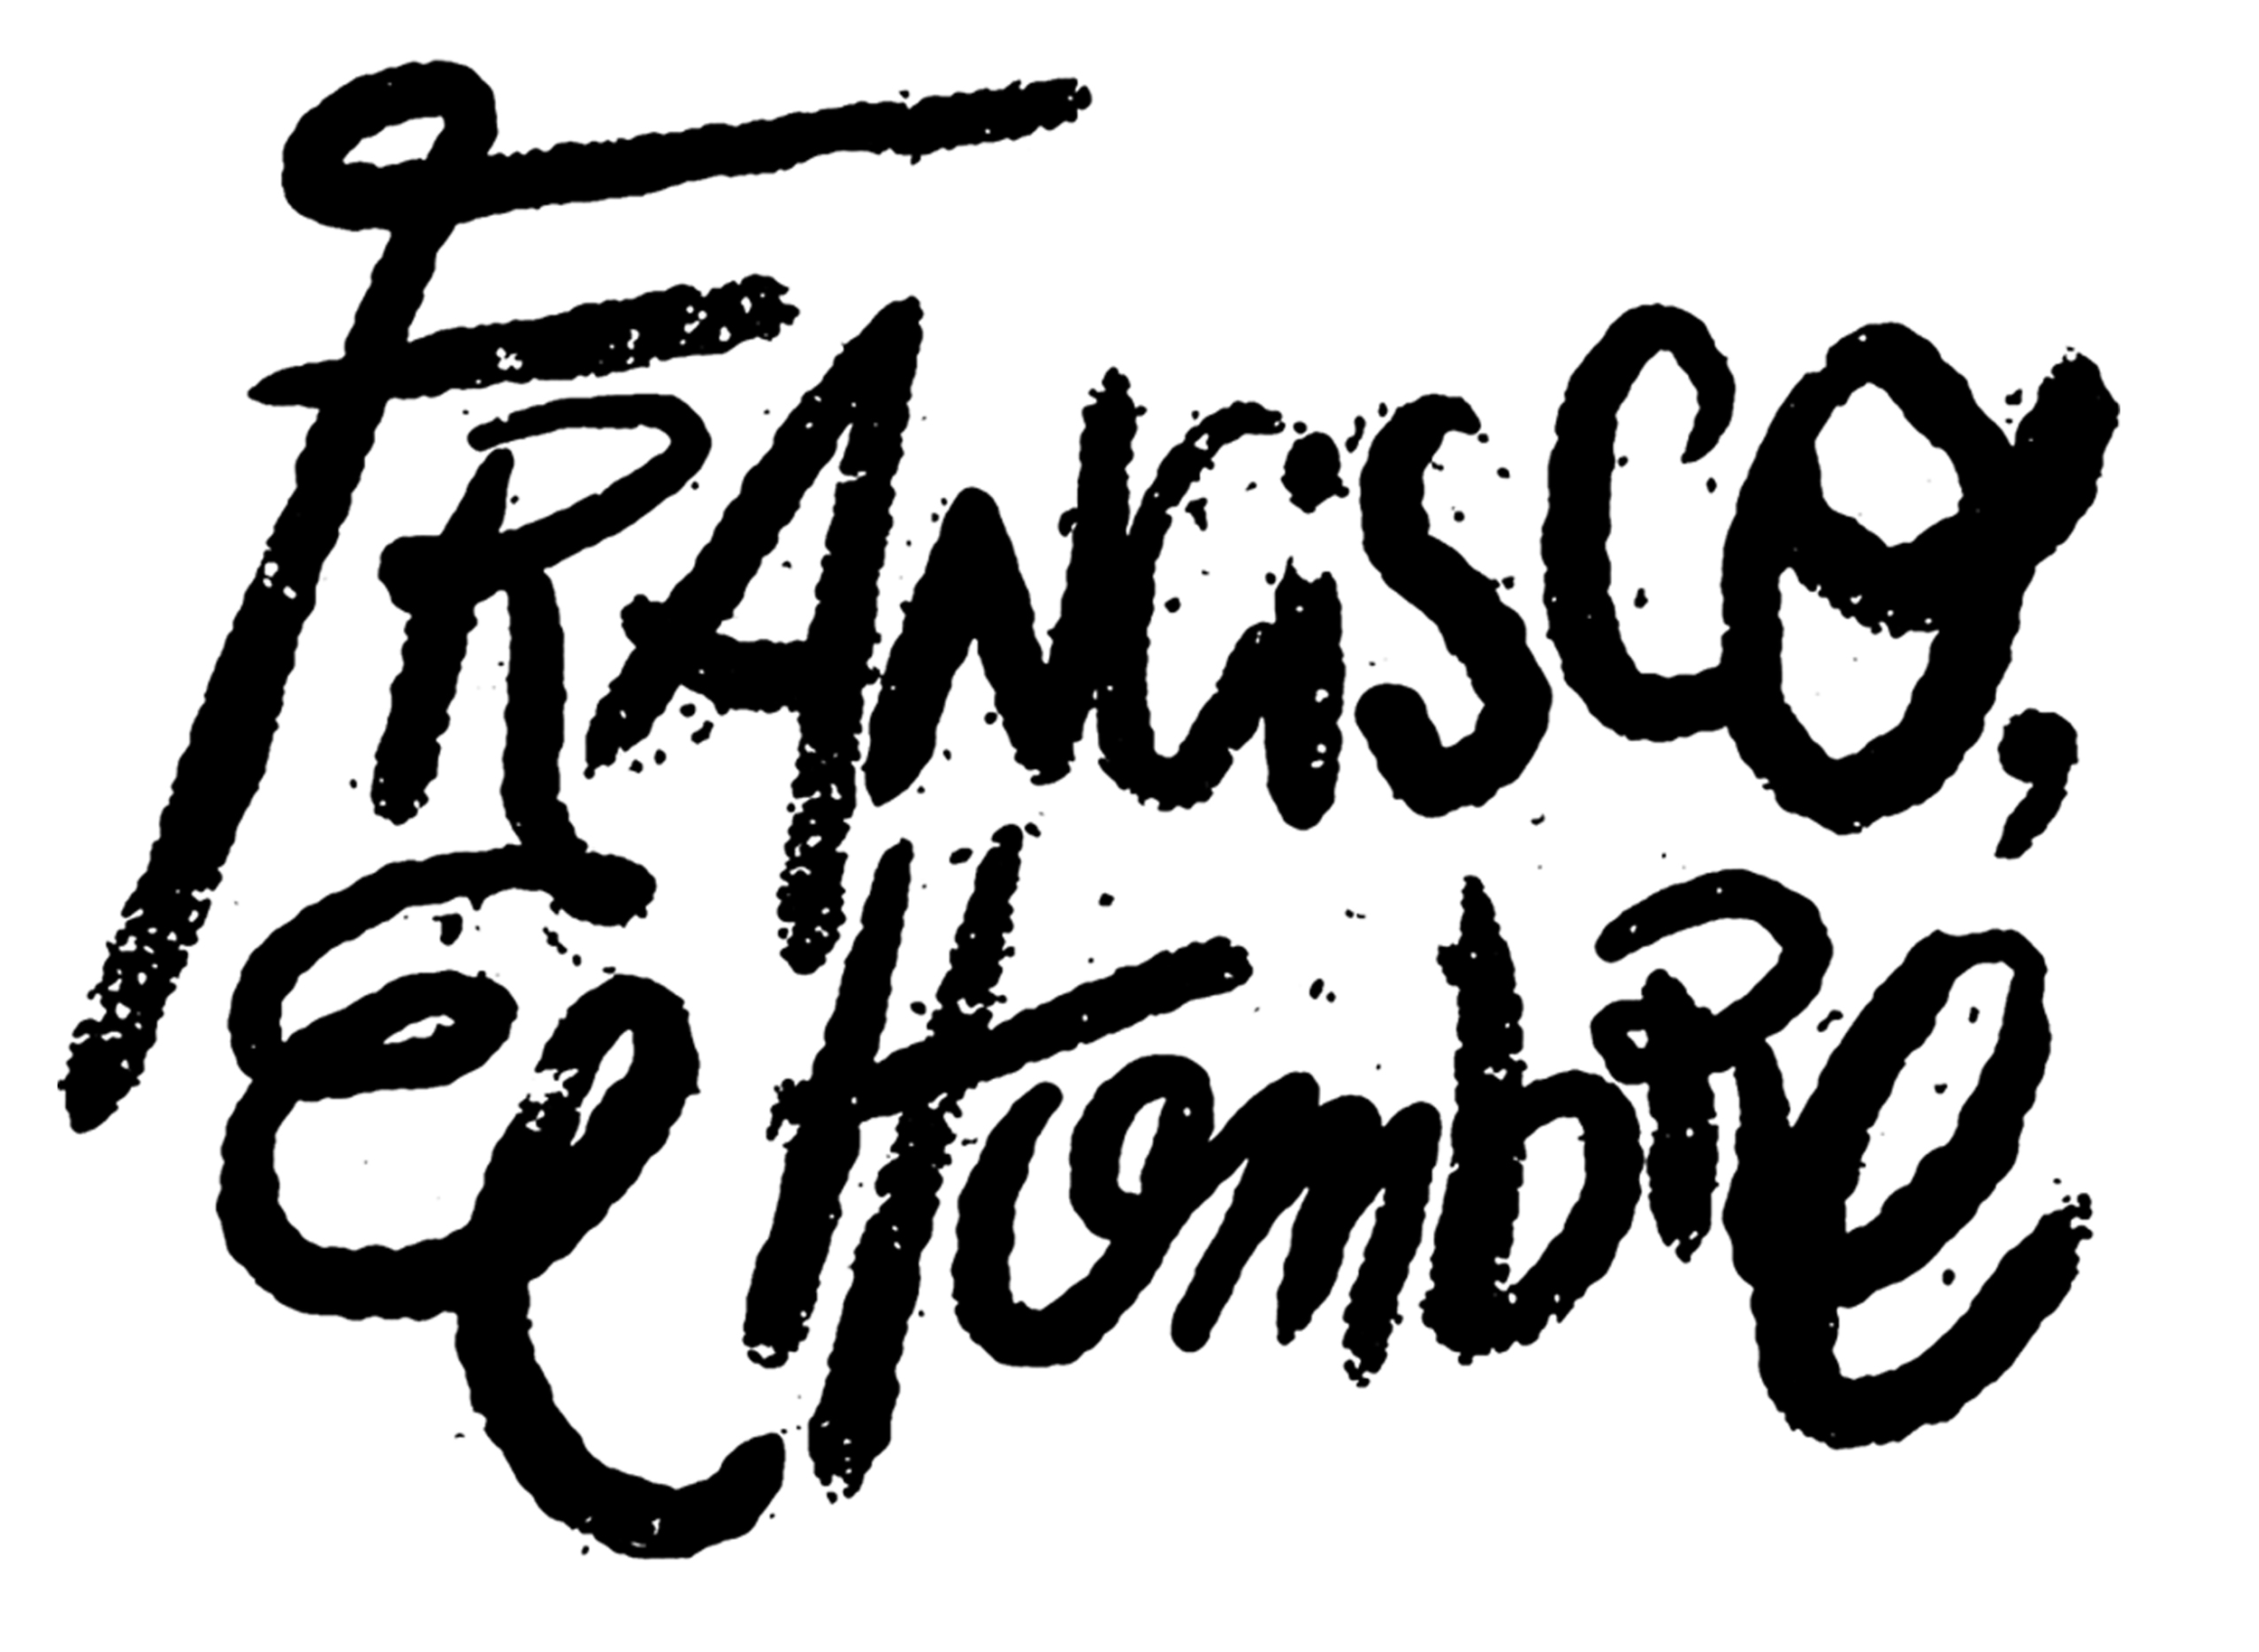 LOGO_FRANCISCO.png